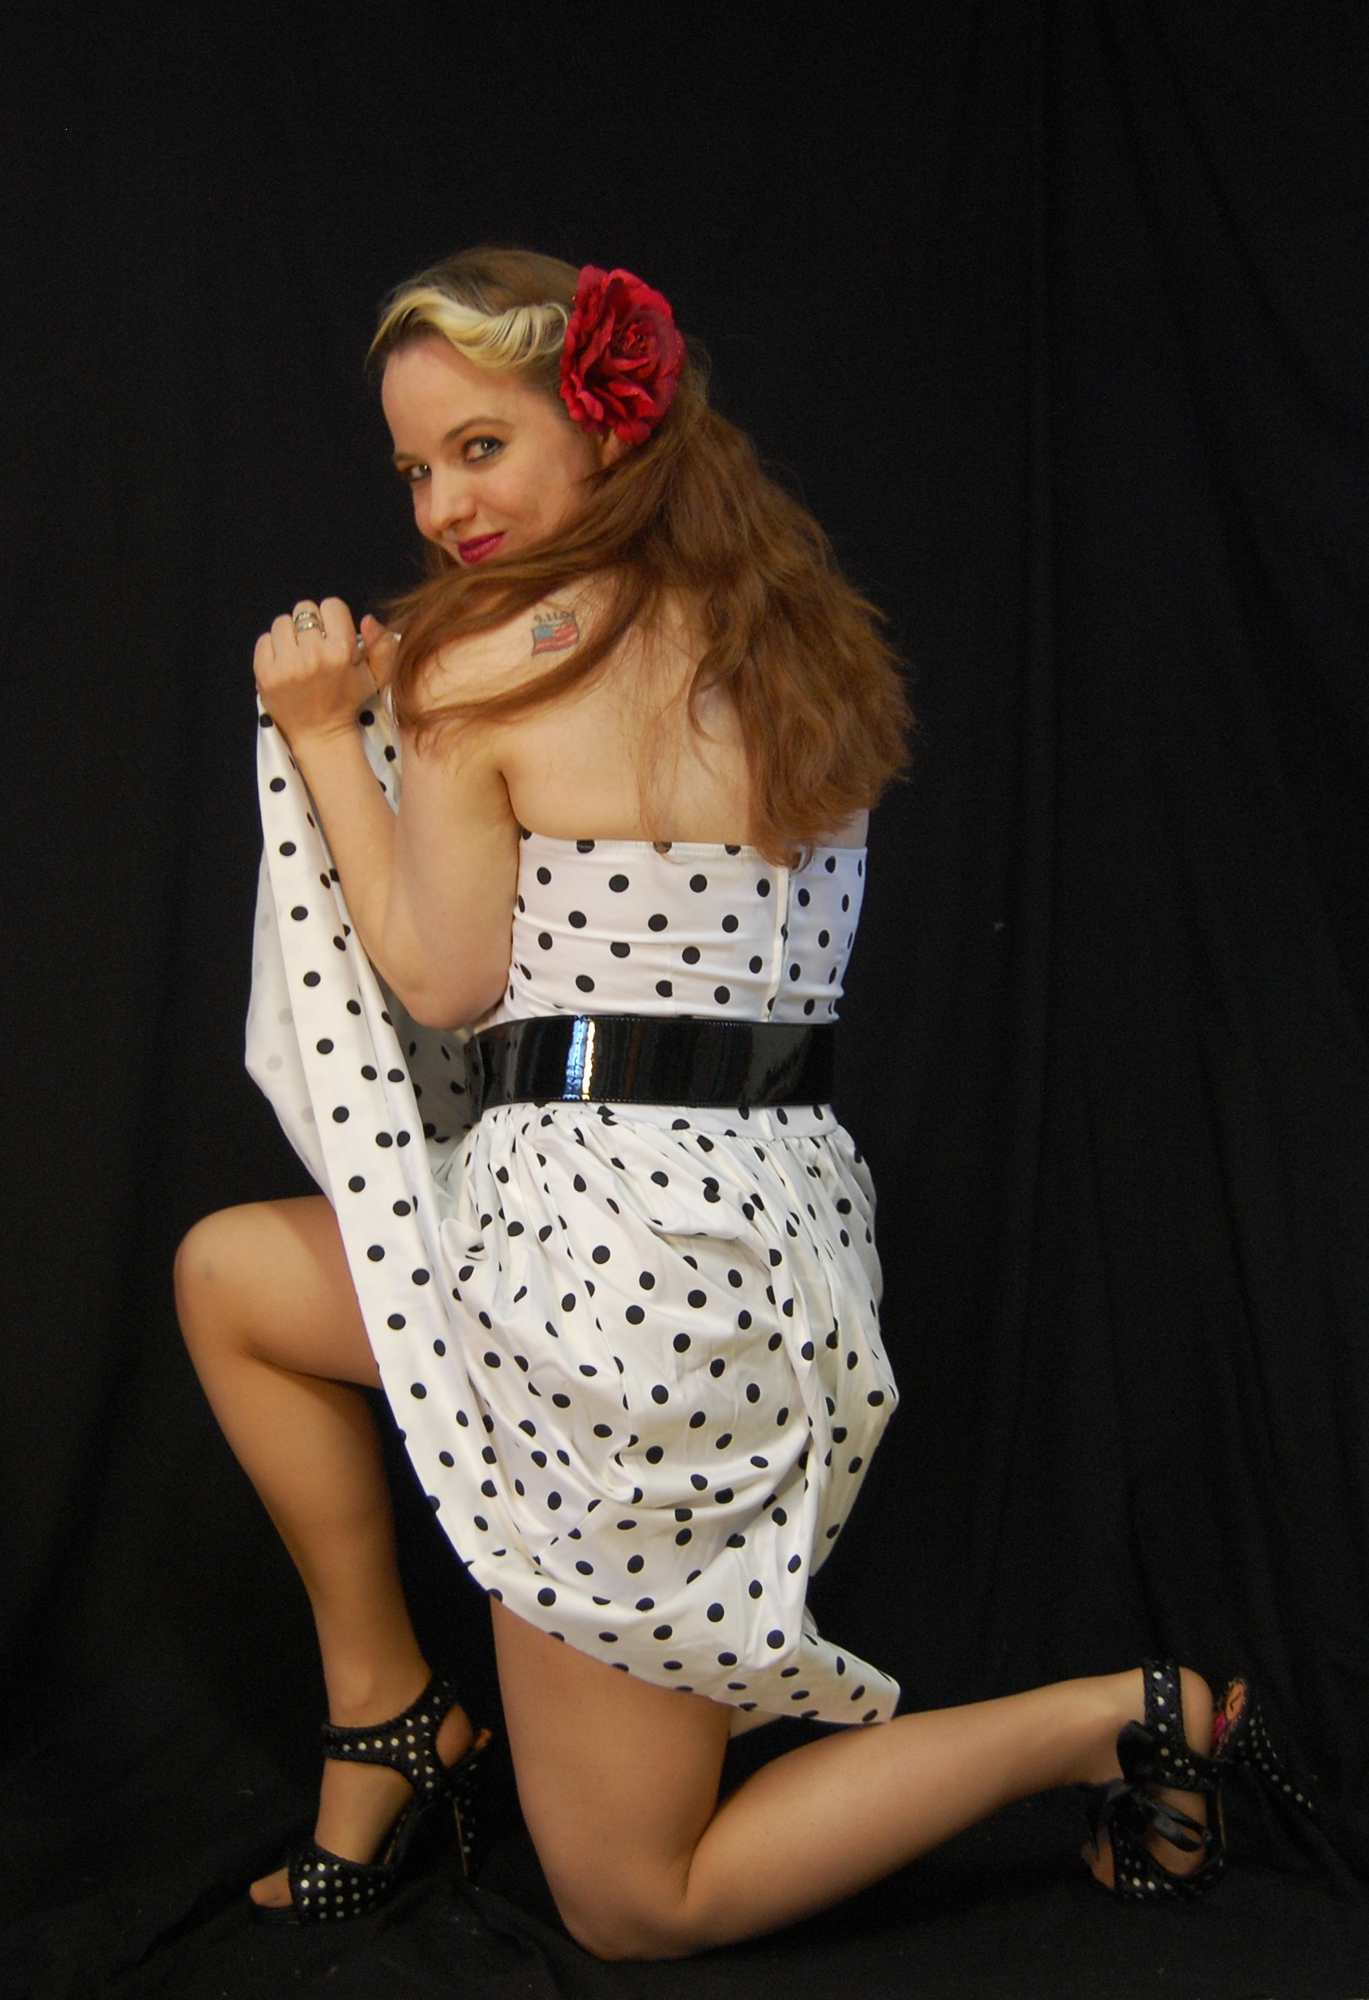 2010 Fife pinup white dress 0610